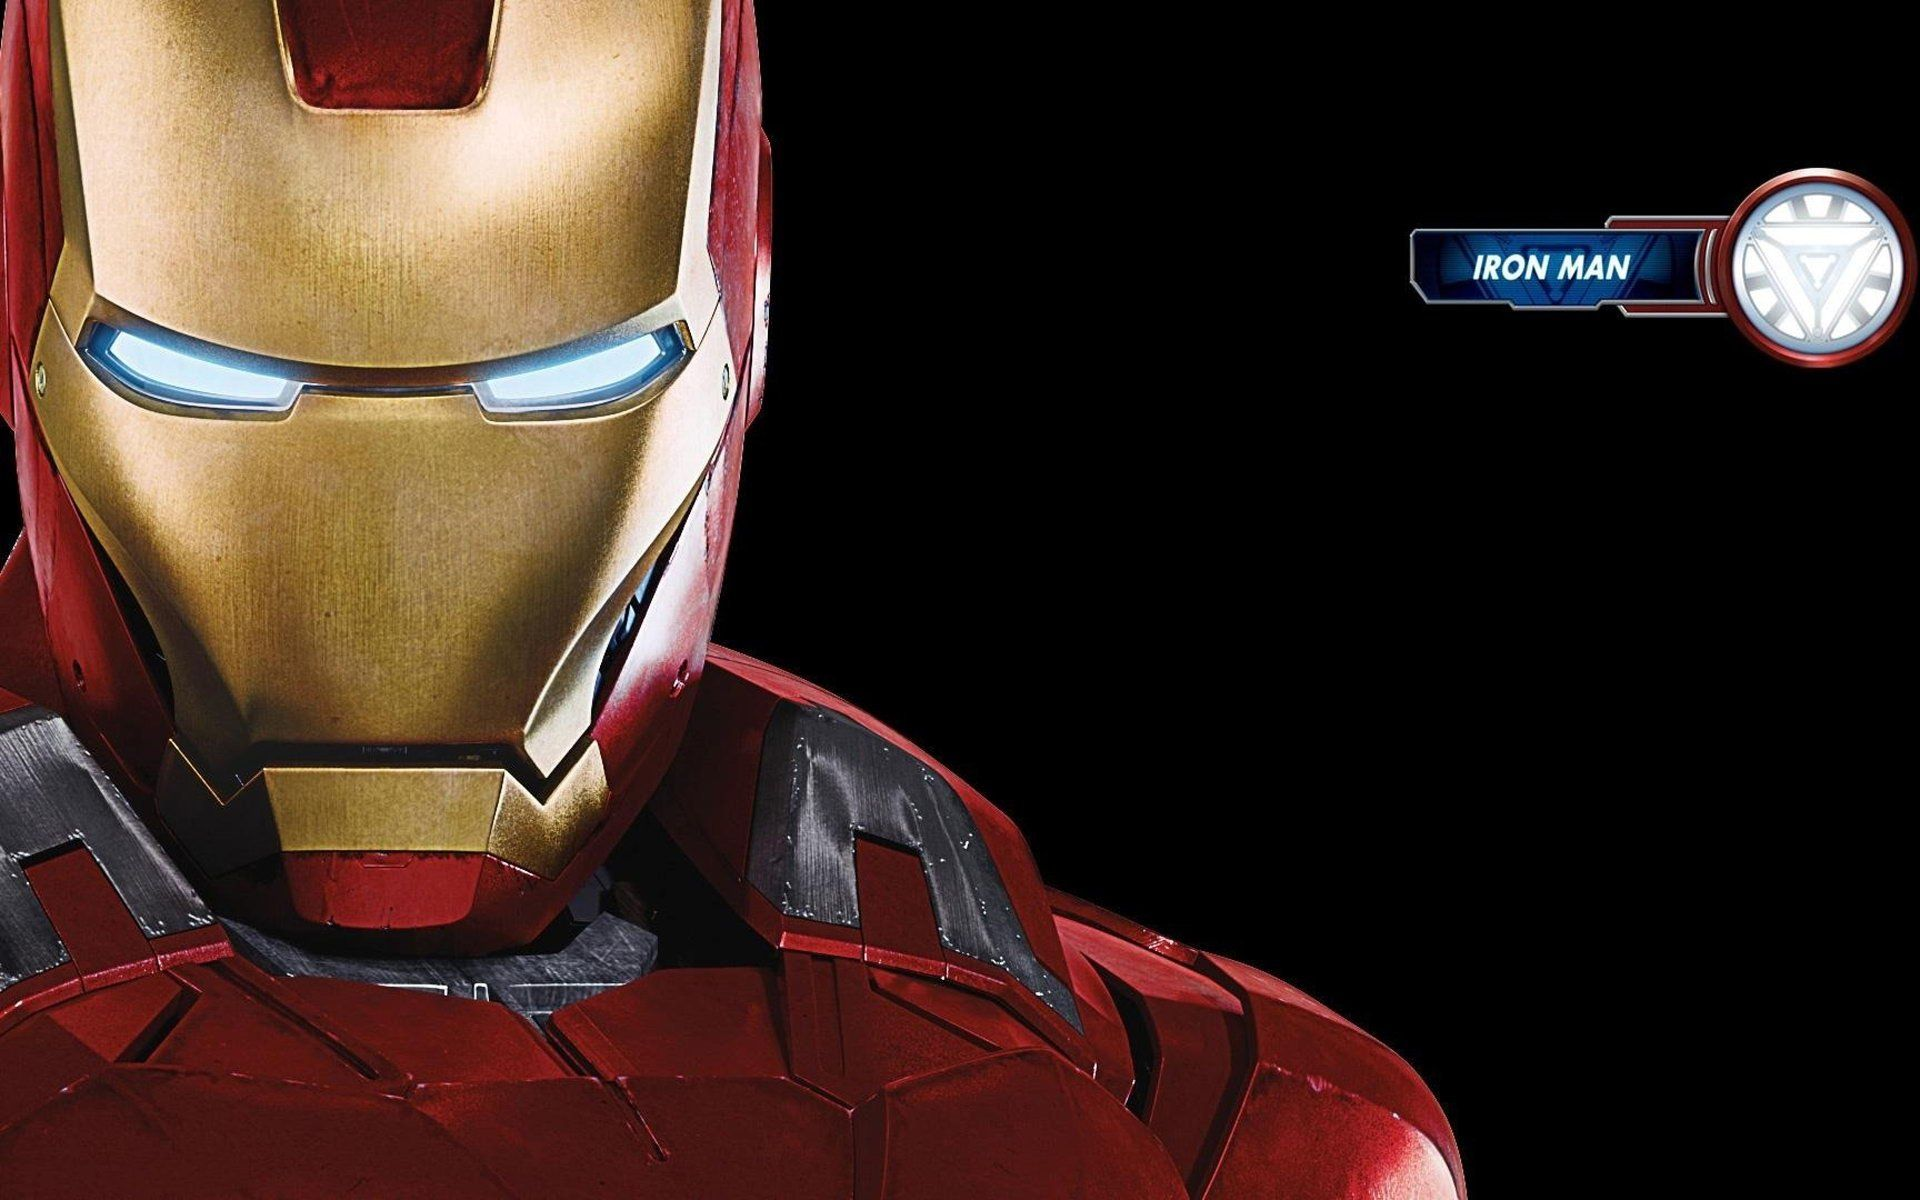 Pin by M.T.K on ironman Iron man wallpaper, Iron man